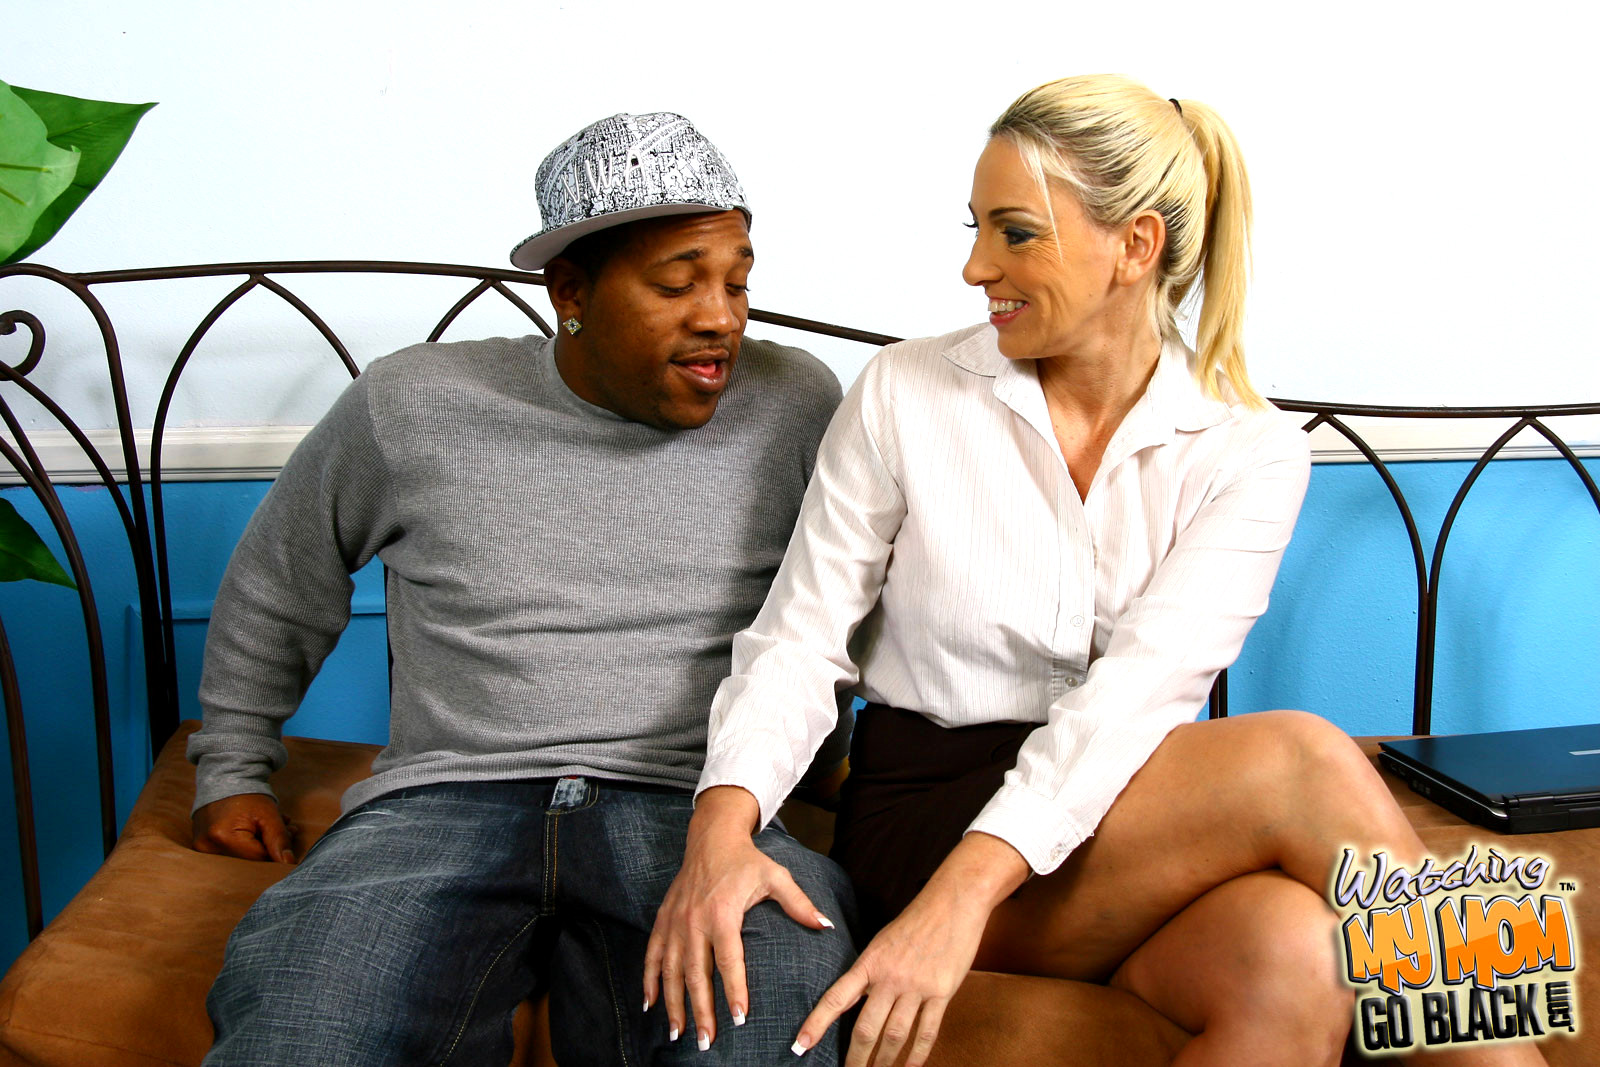 Babe Today Watching My Mom Go Black Cayla Craves Porno -8315